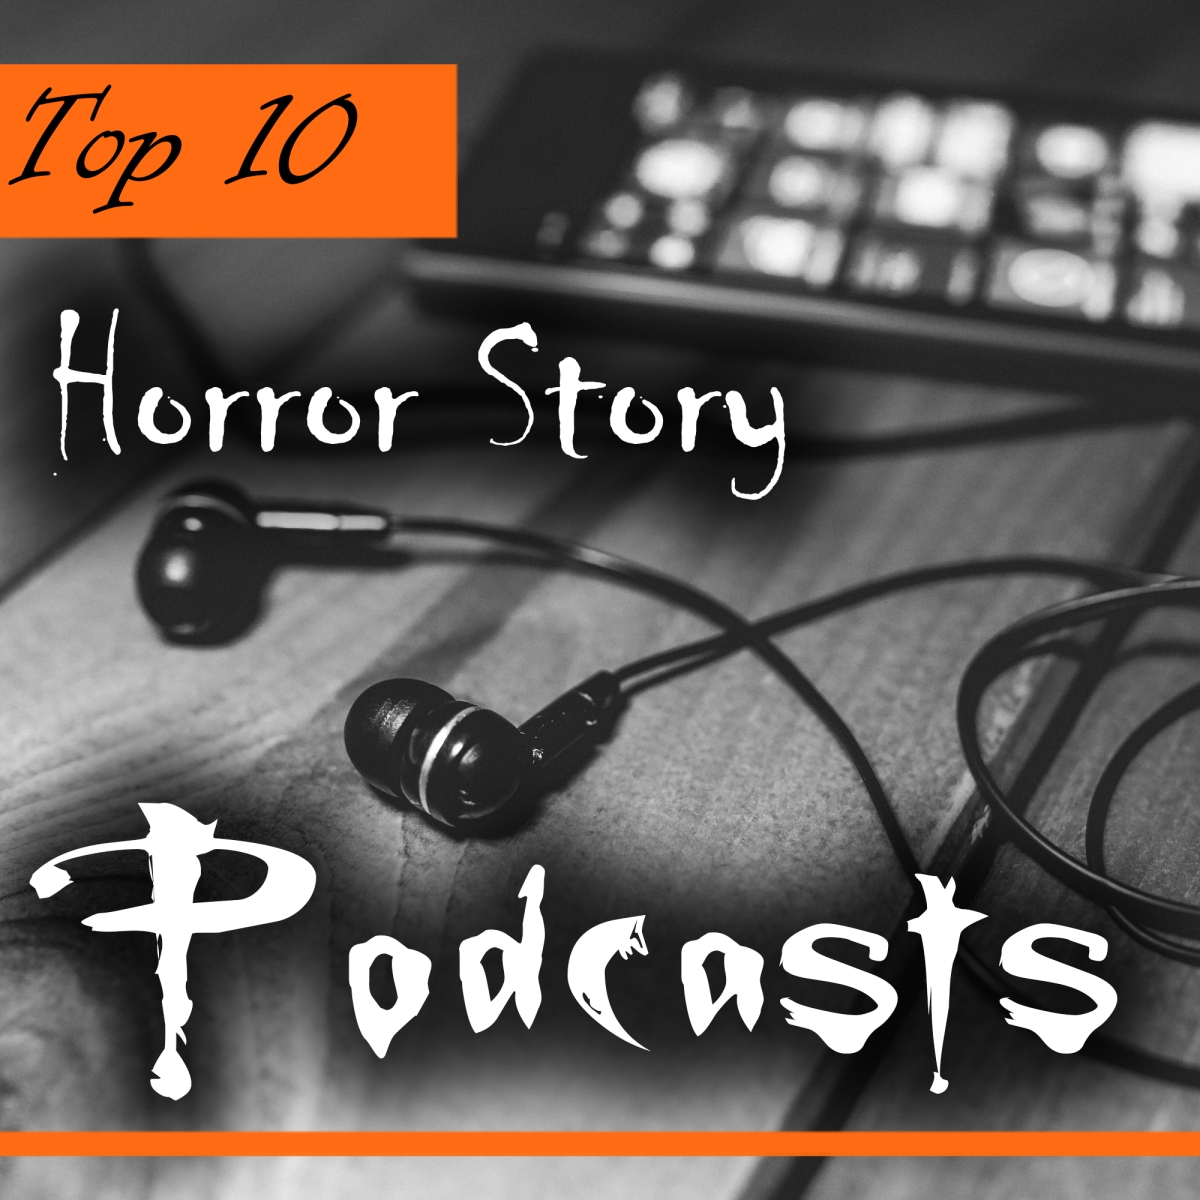 Top 10 Horror Story Podcasts that Will Terrify You